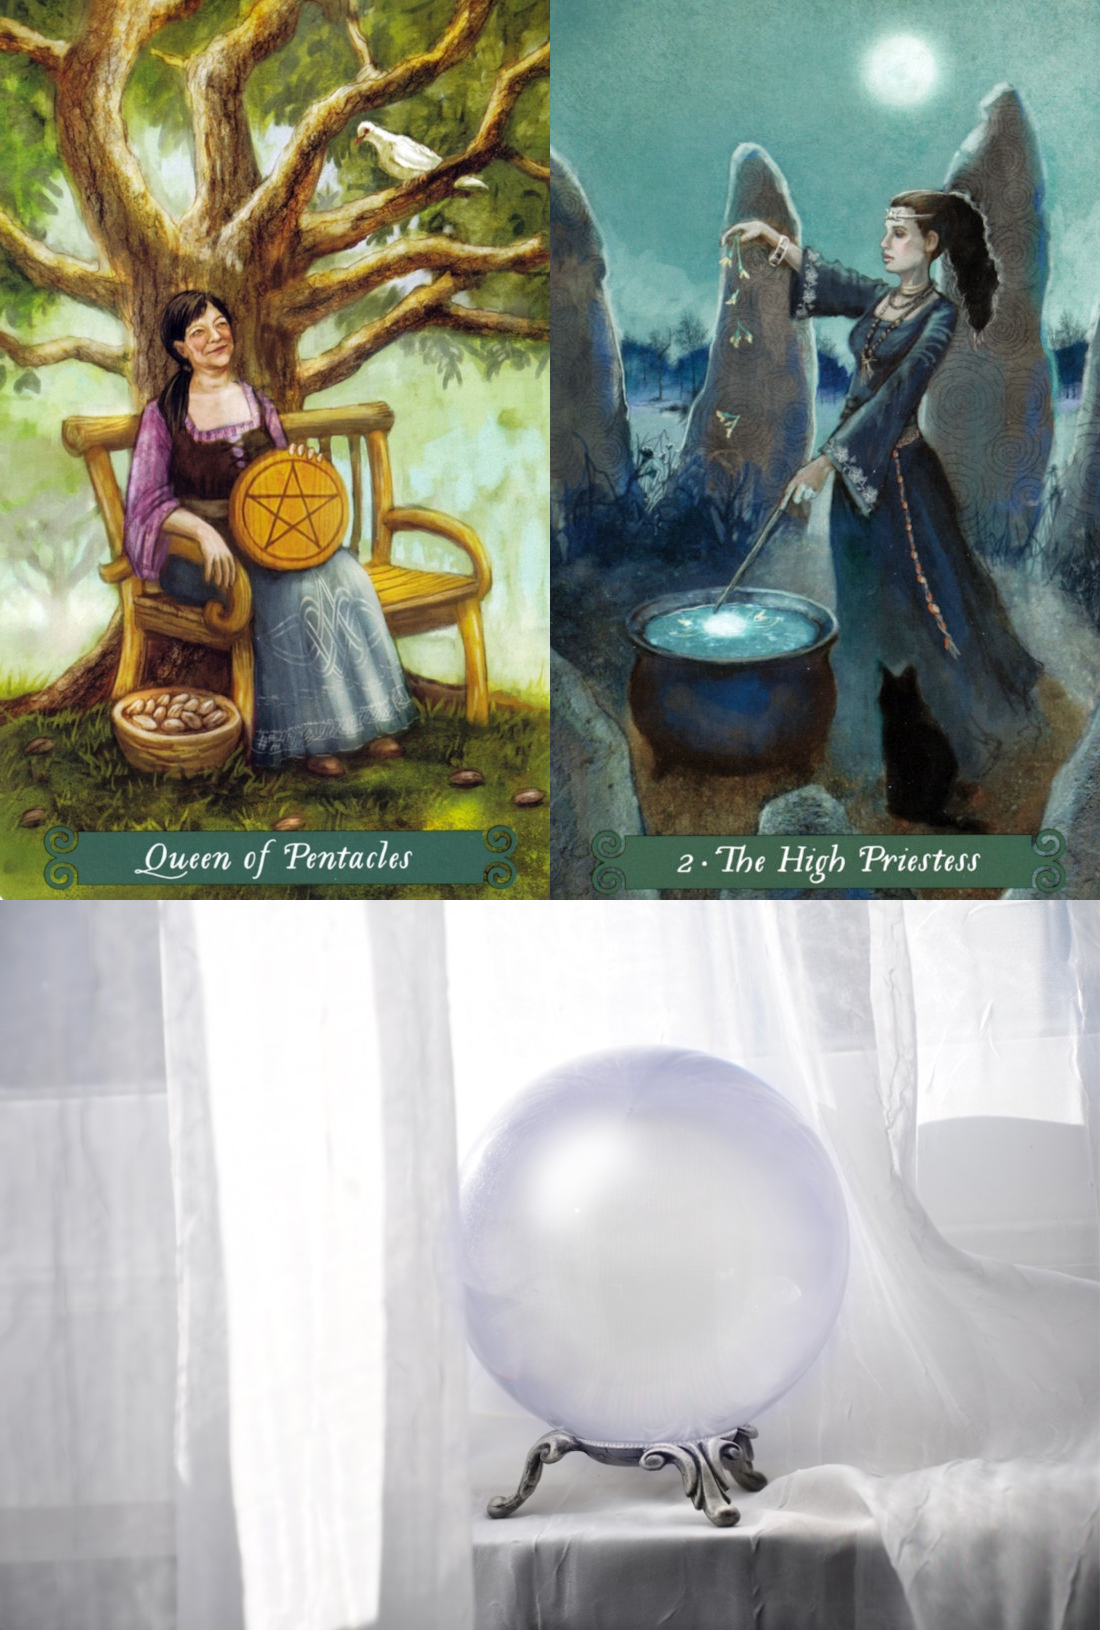 tarot card spread online, get a free tarot reading and ask